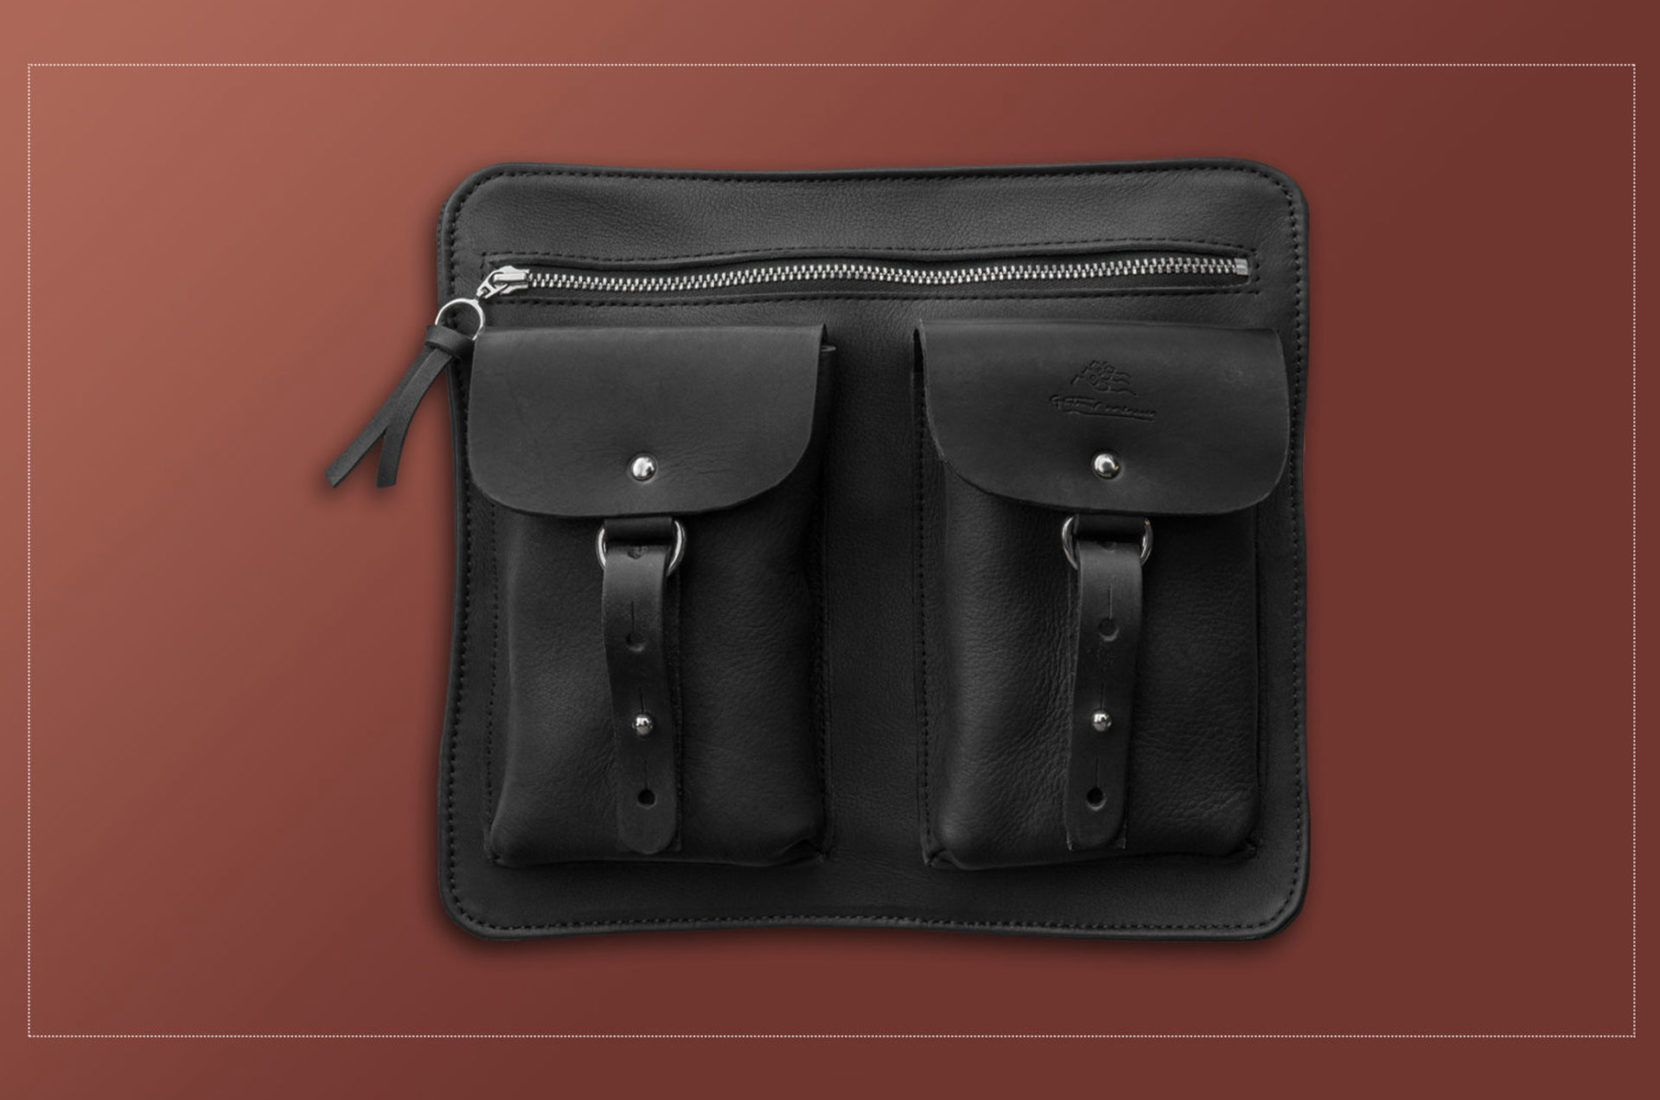 NEW: Discover the new Rider Leather Pocket Gaston Mercier !!